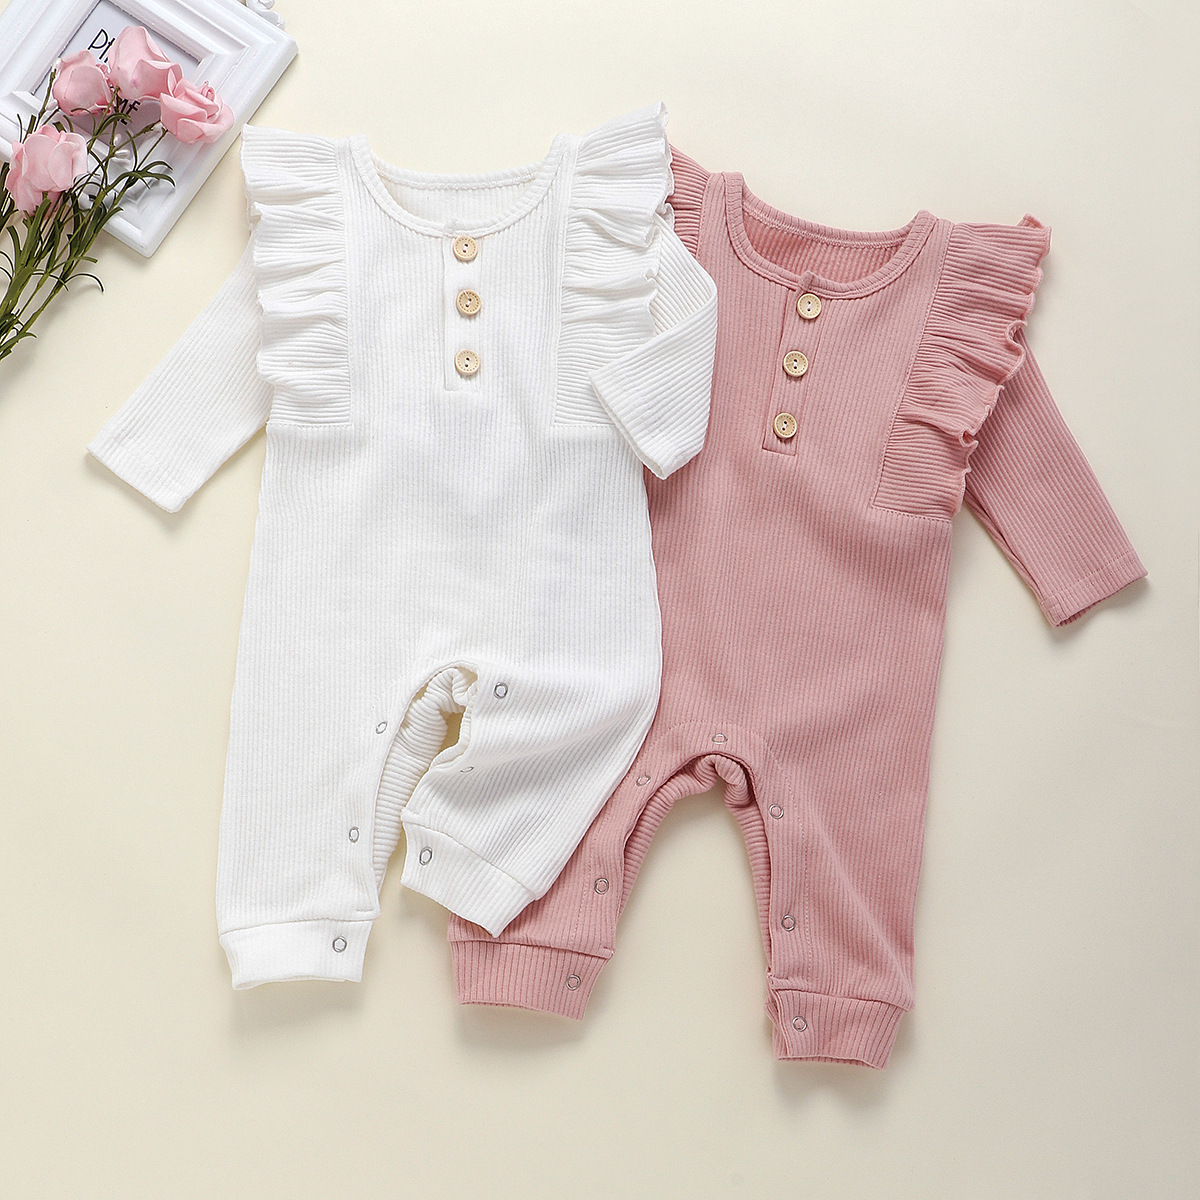 Infant and children's clothing autumn dress jumpsuit romper cotton pit one-piece clothing free shipping